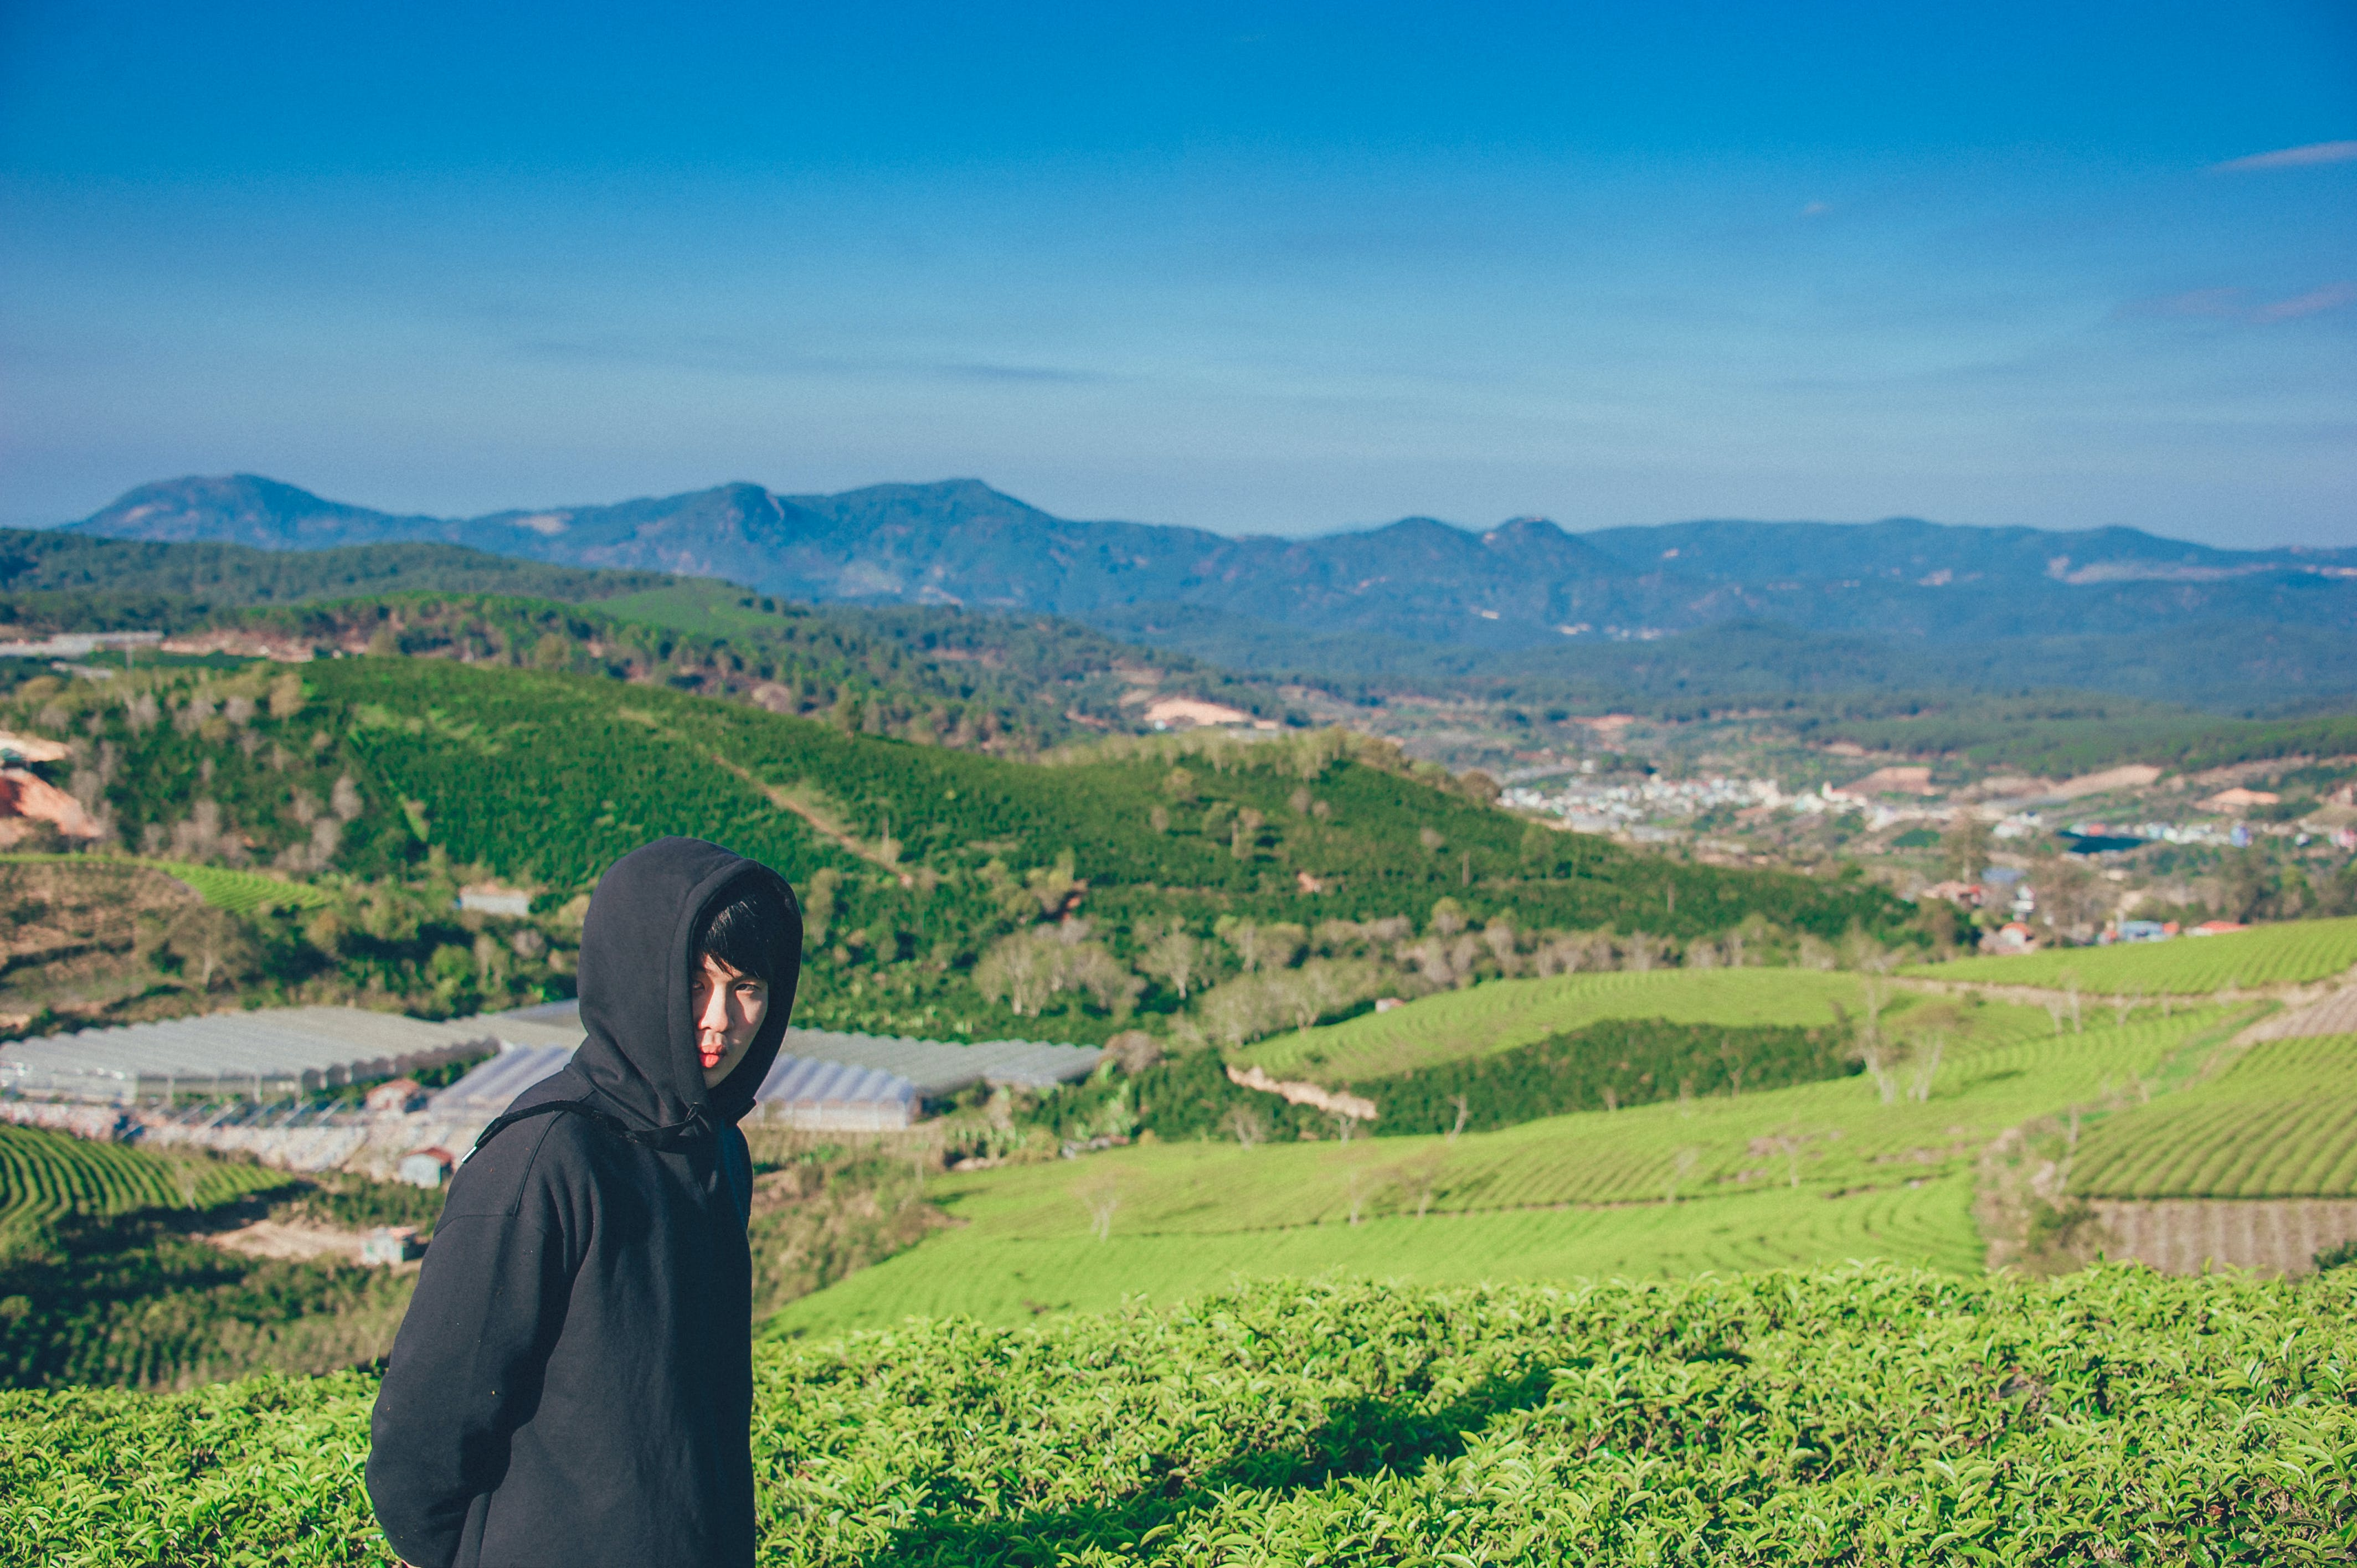 Man Wearing Hoodie Taking Picture With Mountain and Field Photography